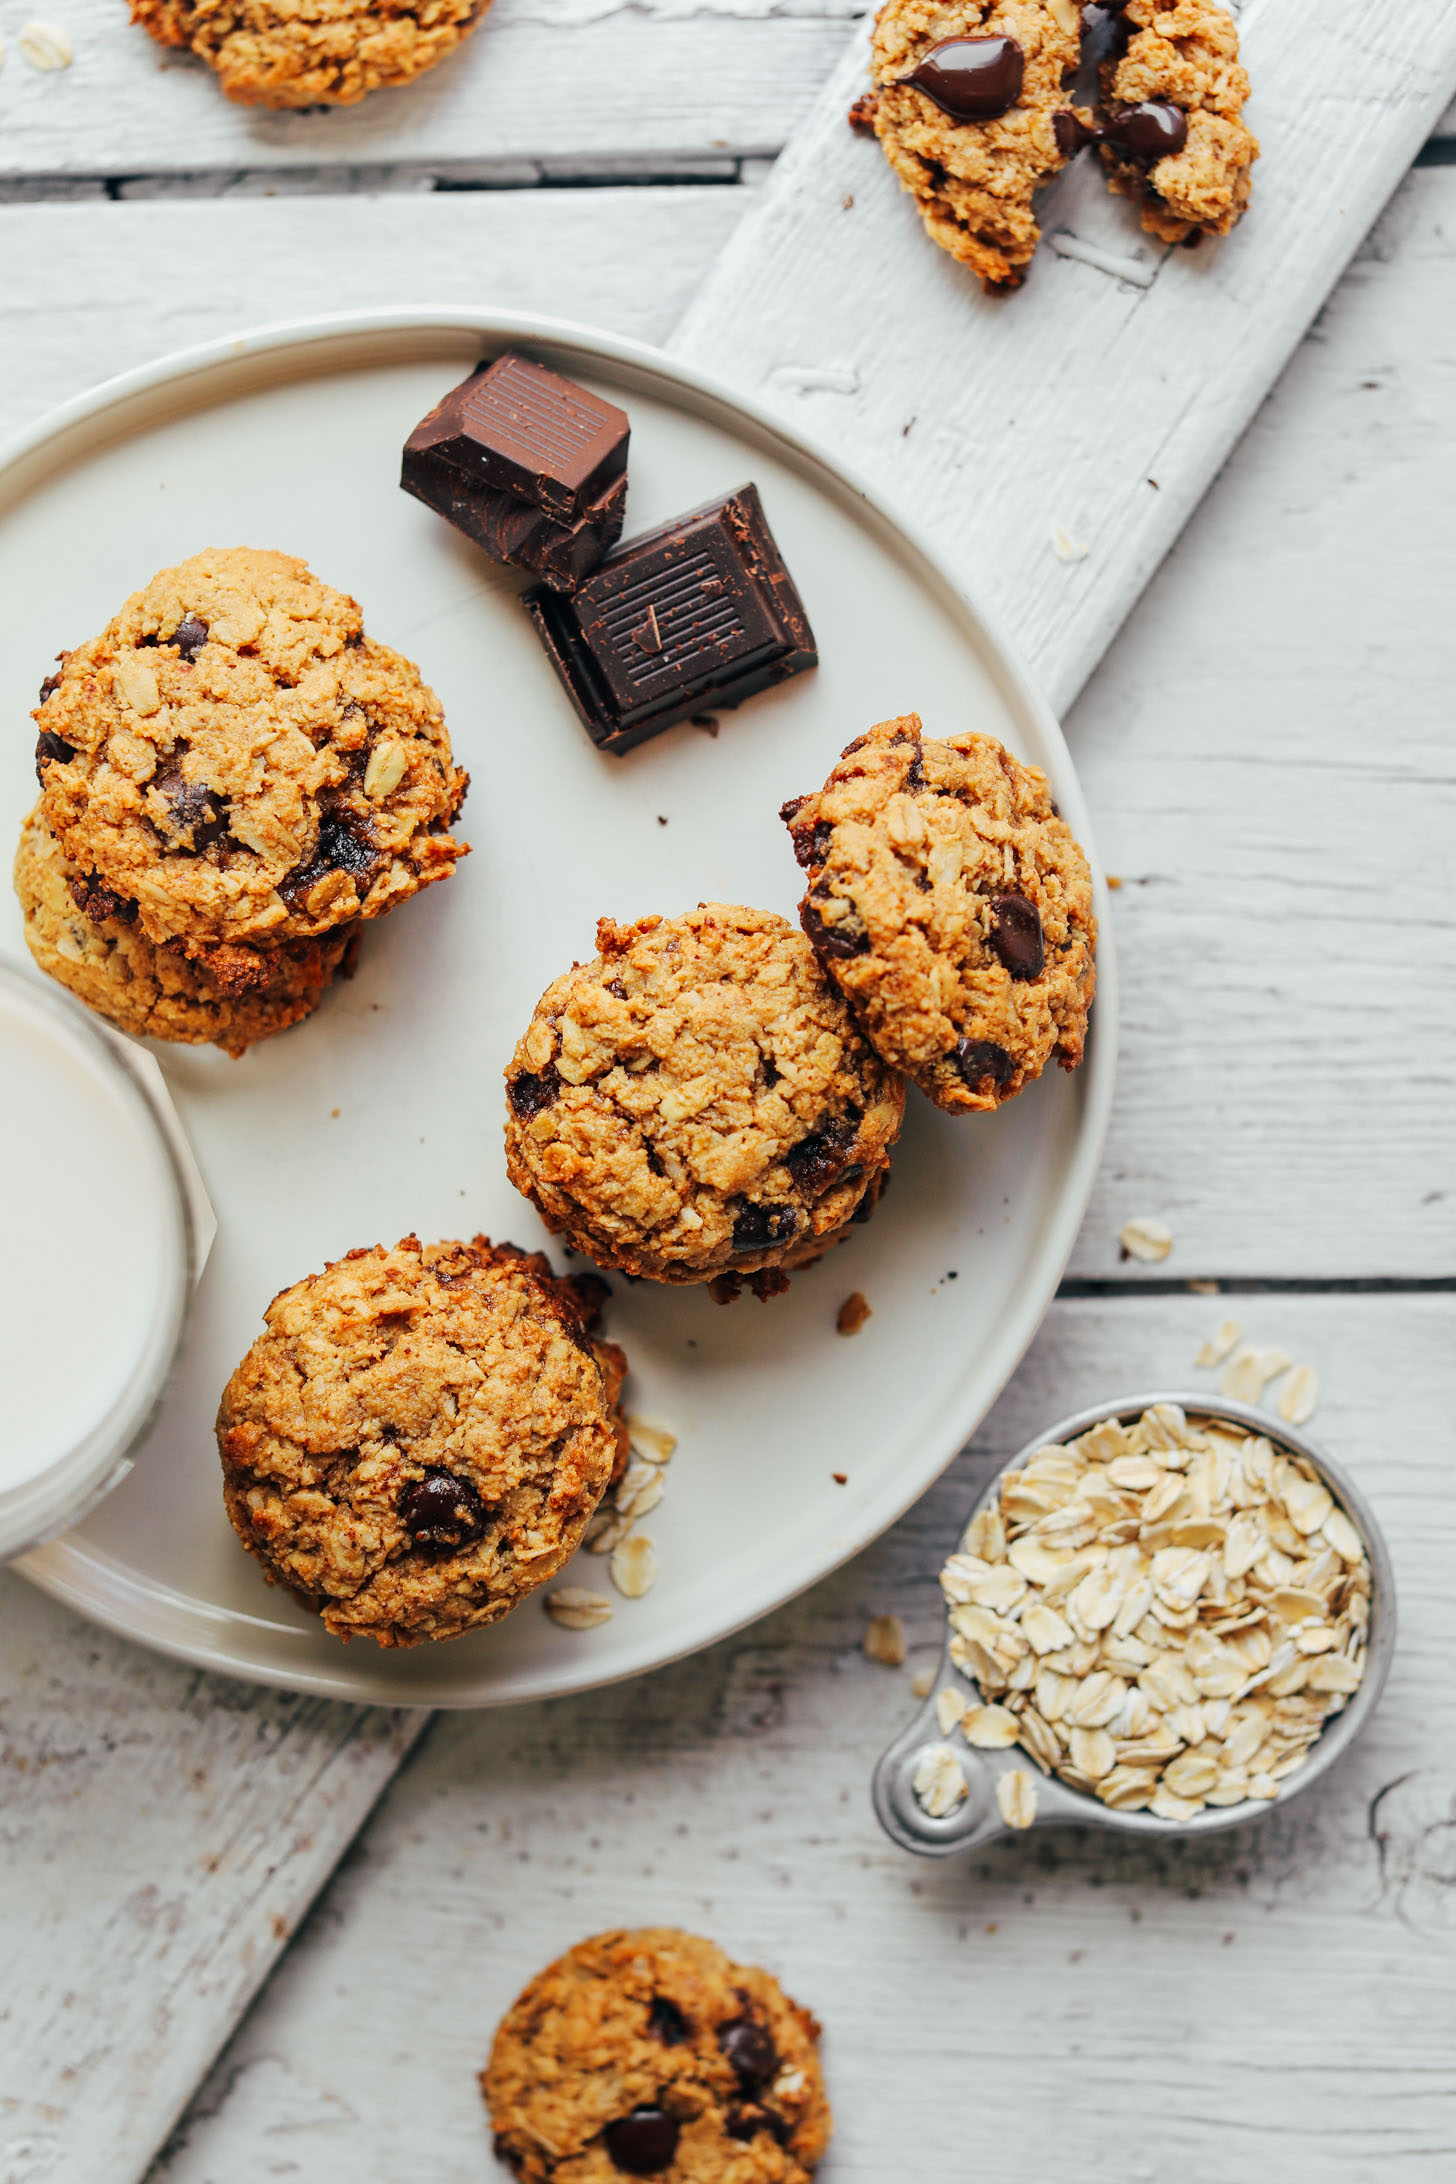 Plate of Healthy Gluten-Free Vegan Oatmeal Chocolate Chip Cookies